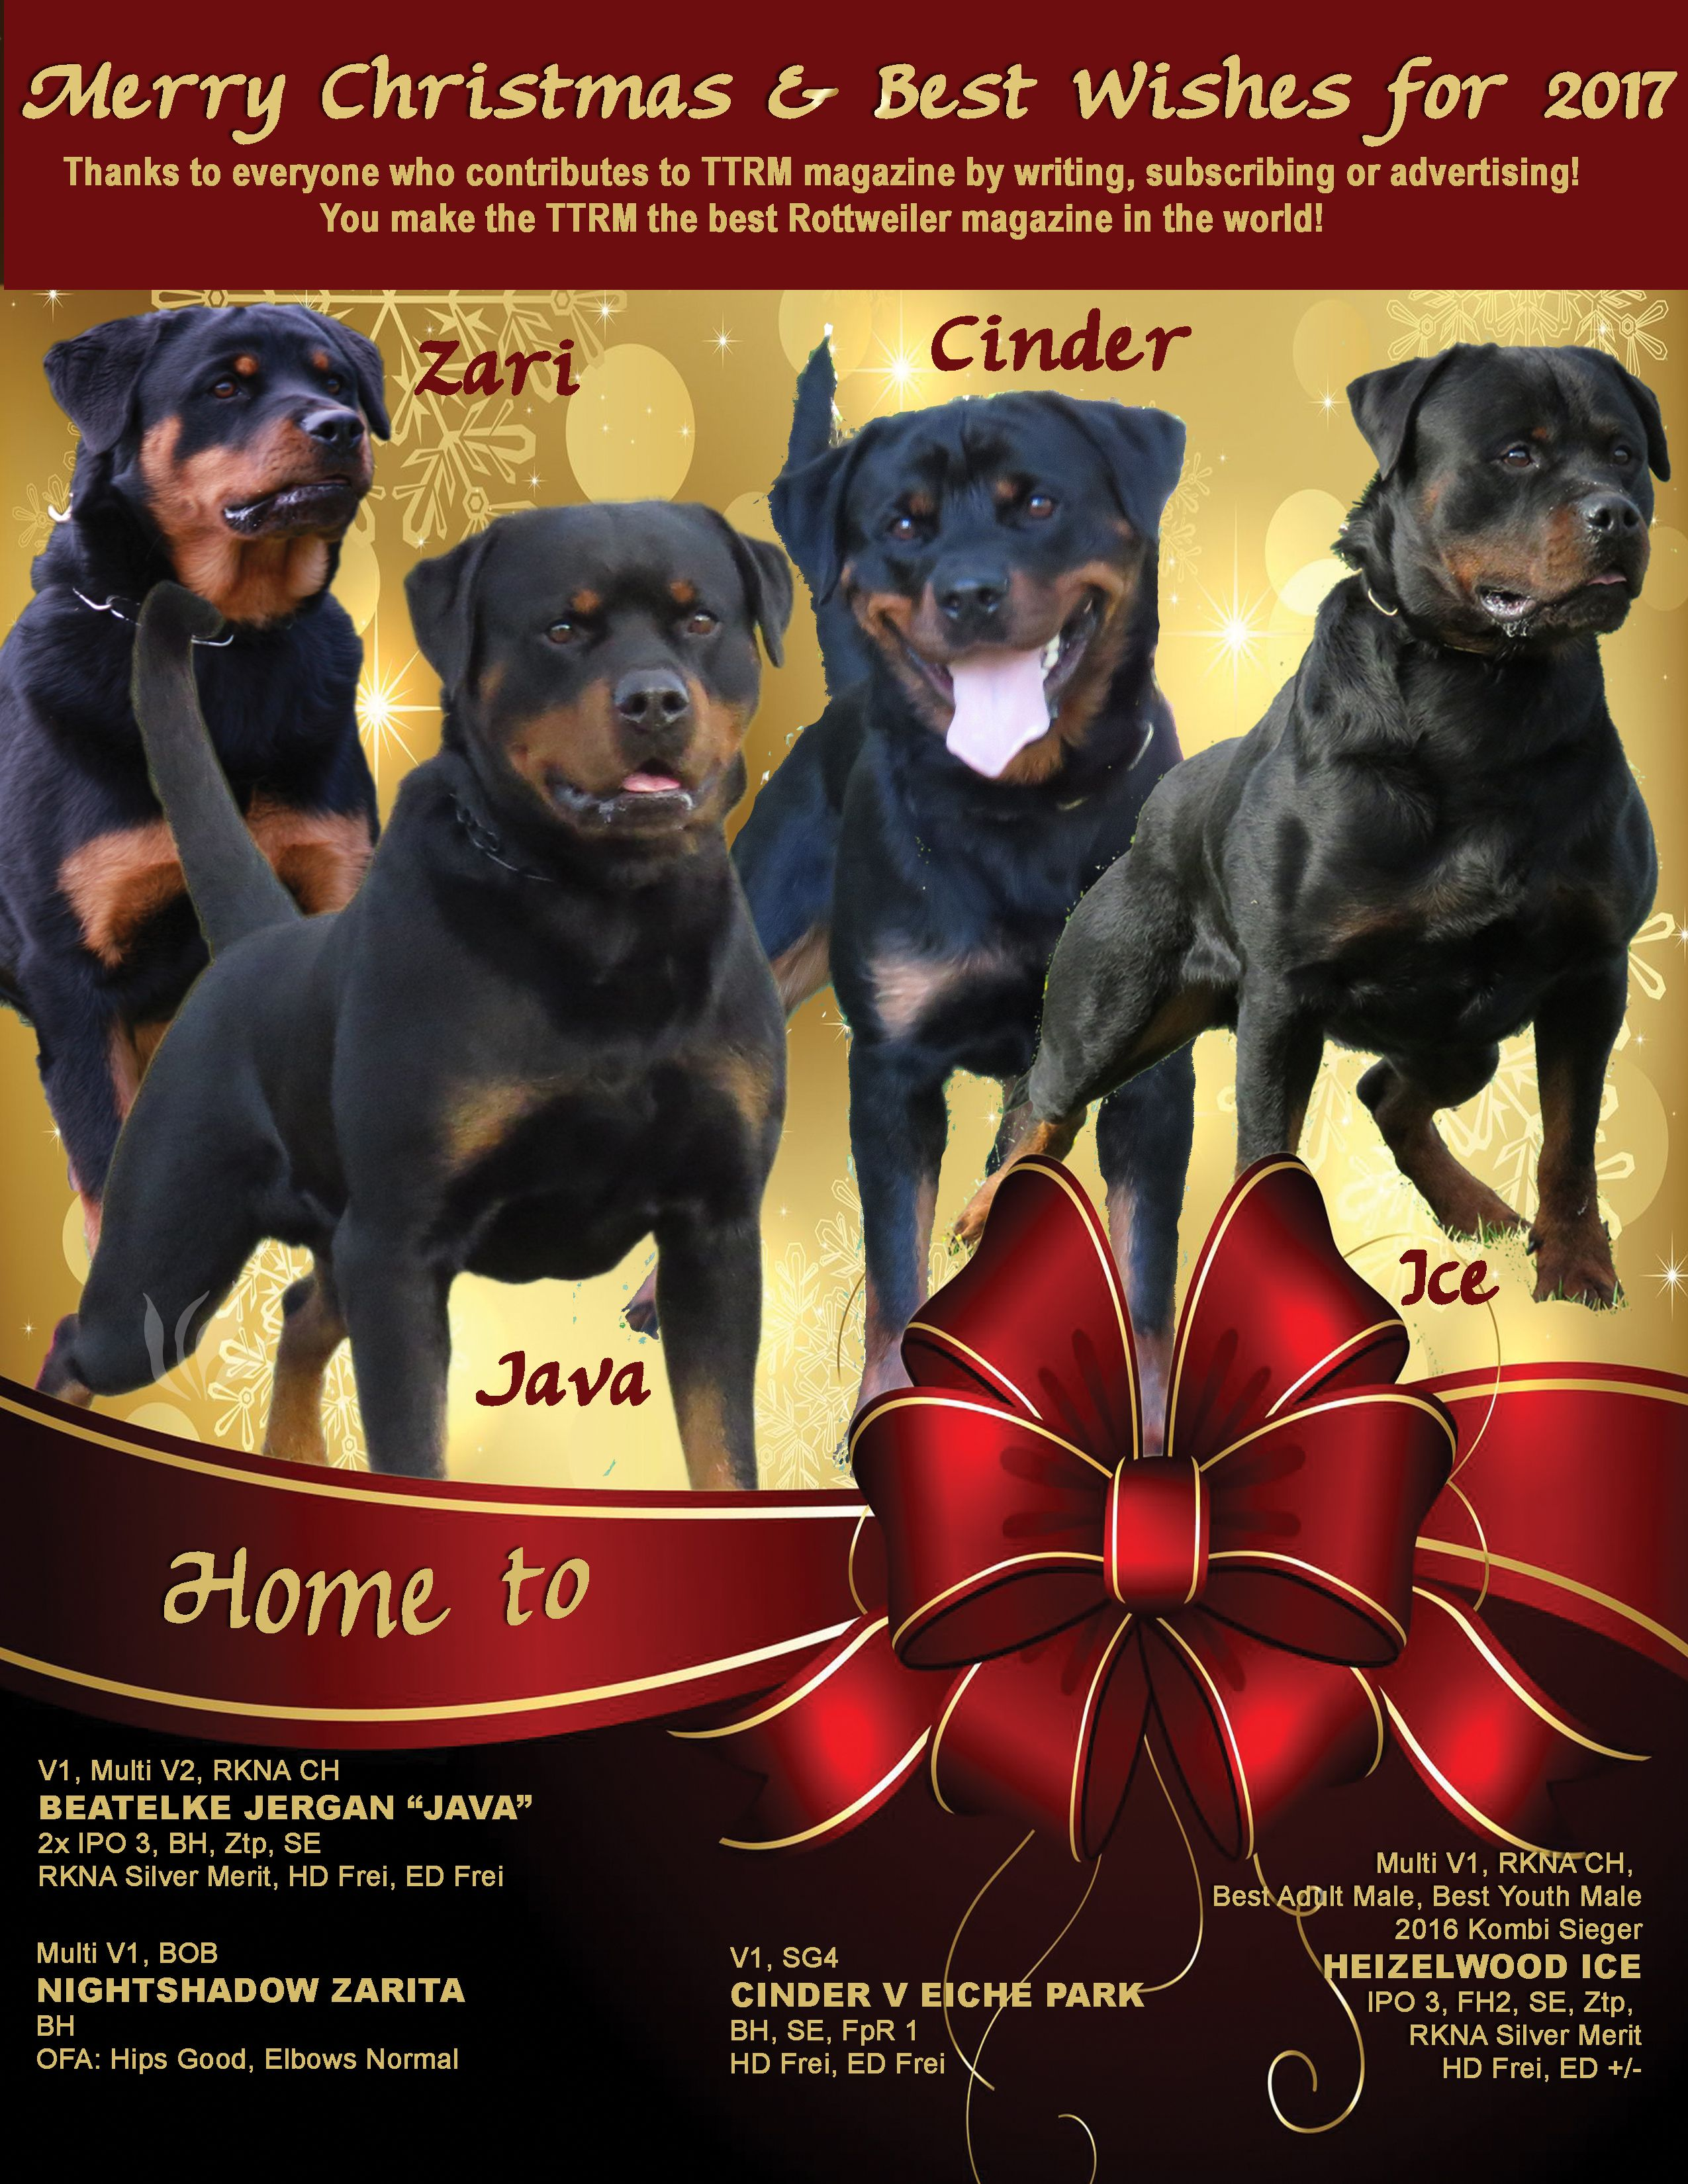 Pin By Garen On Rottie Christmas Stud Dog Rottweiler Rottie